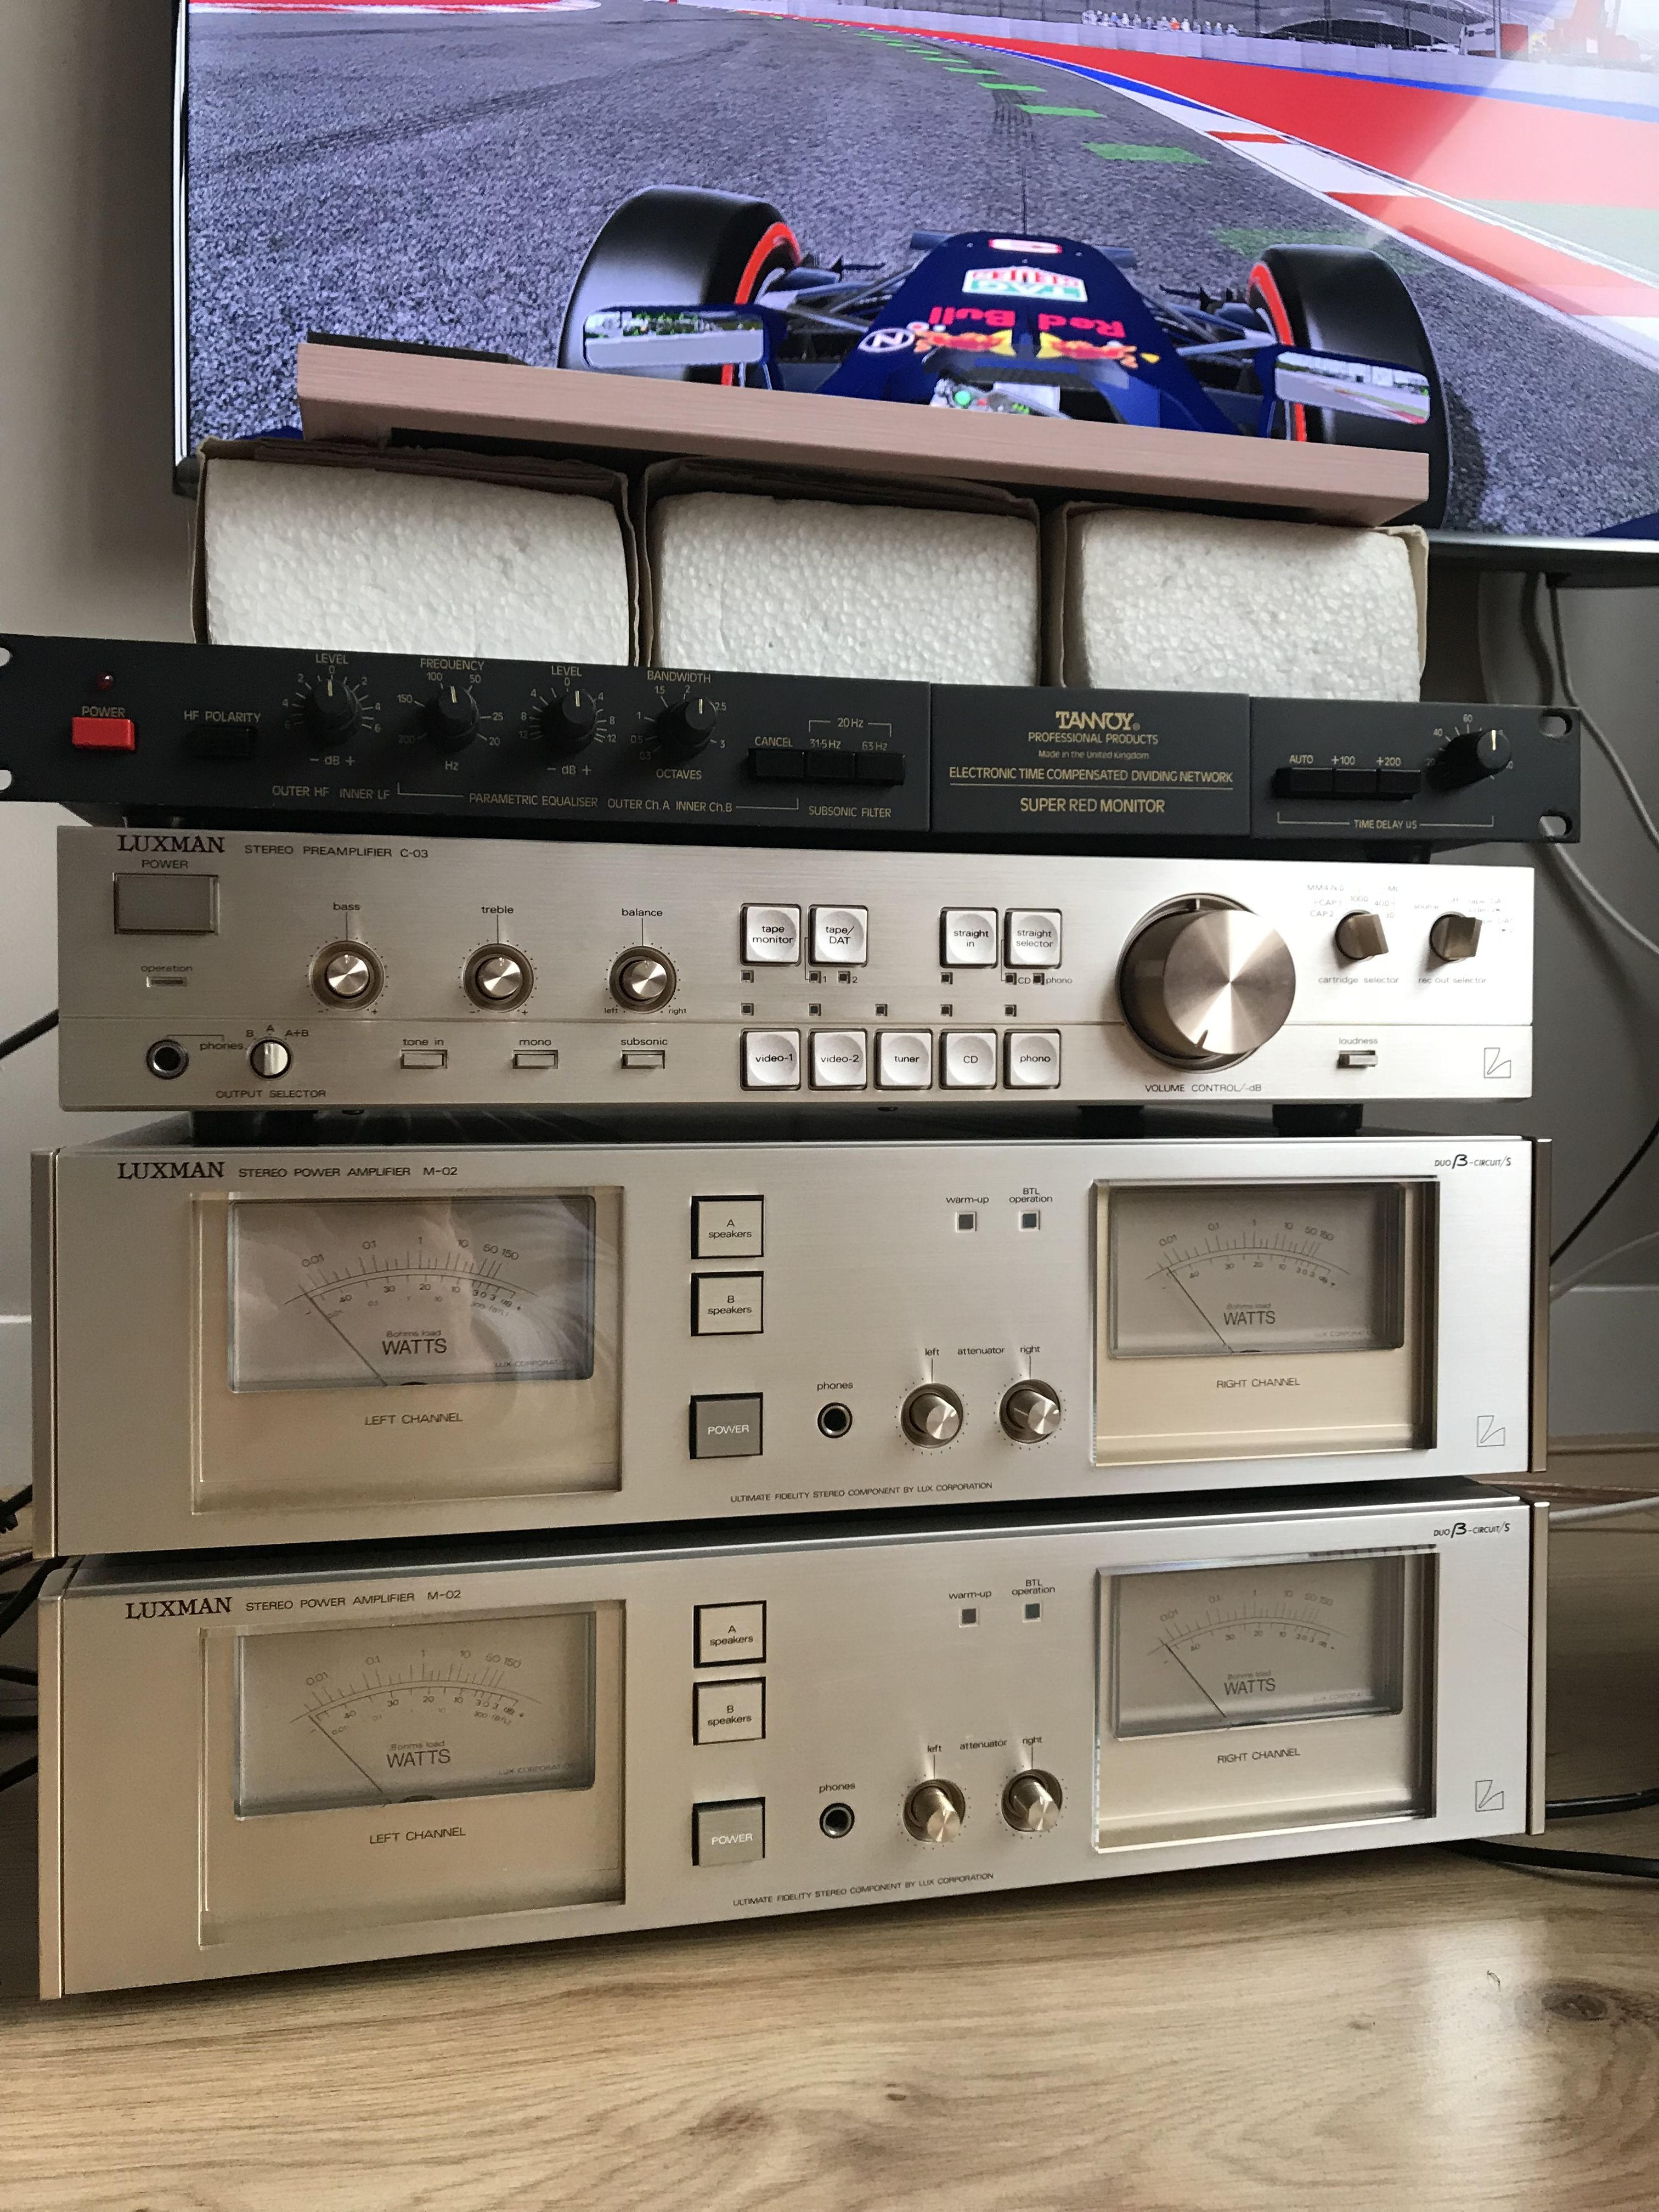 Luxman Amplifiers And Tannoy Xo5000 Dividing Network Vintage  # Muebles Nullius